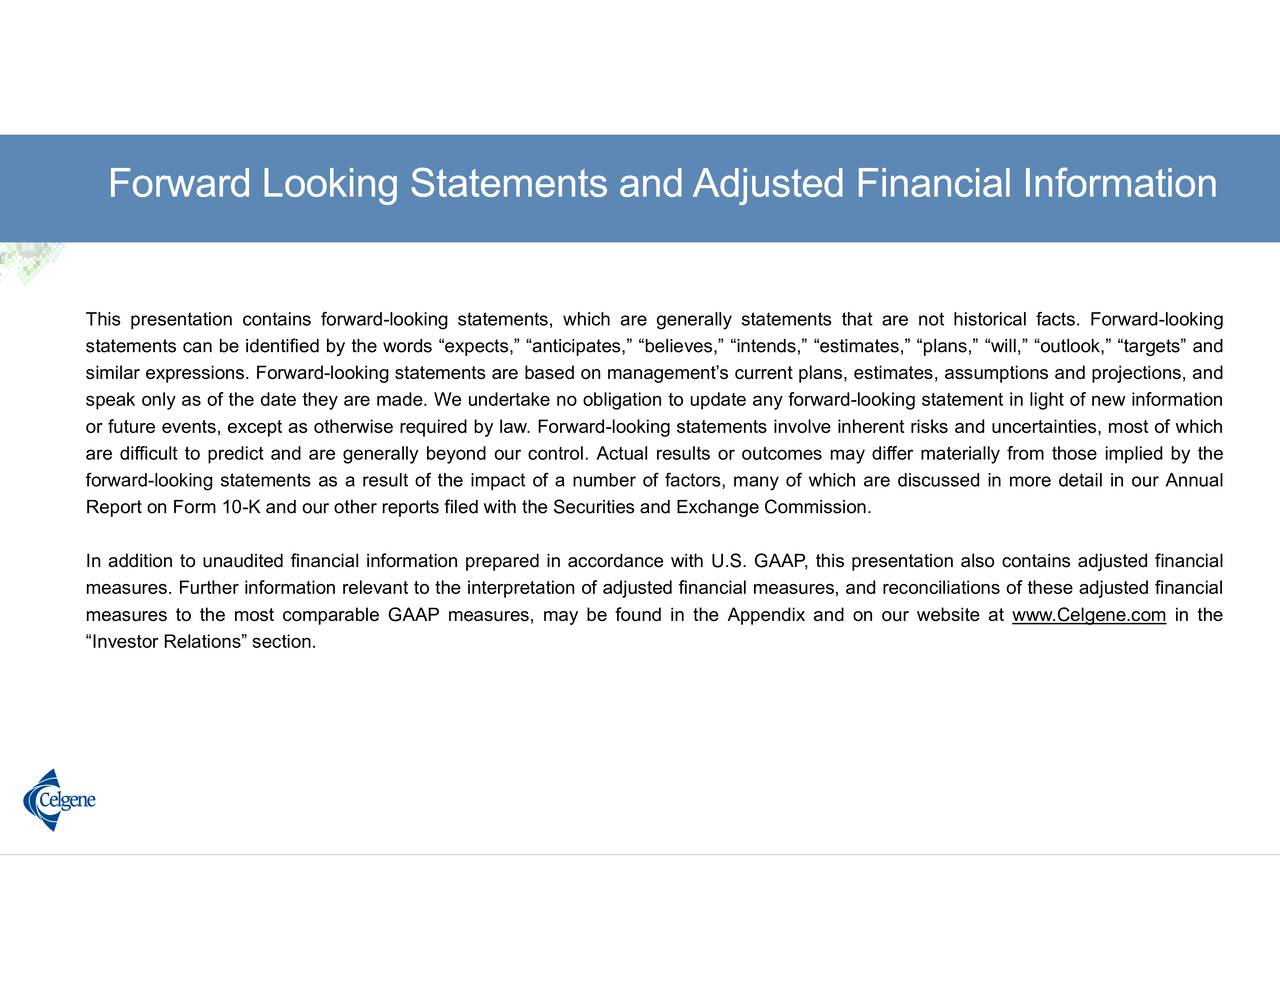 orical facts. Forward-looking s, will, outlook, targets a Ad djjus sttederally statements that are not hist attion n ves, intends, estimatwith U.S. GAAP, this presentation also contains adjusted financial g statements involve inherent risks and uncertainties, most of which Forward Looking Statements and This presentation contains forward-loivesttrteeleitn,wshictinr.e genrttopatedlresfitcrylouwcftyin